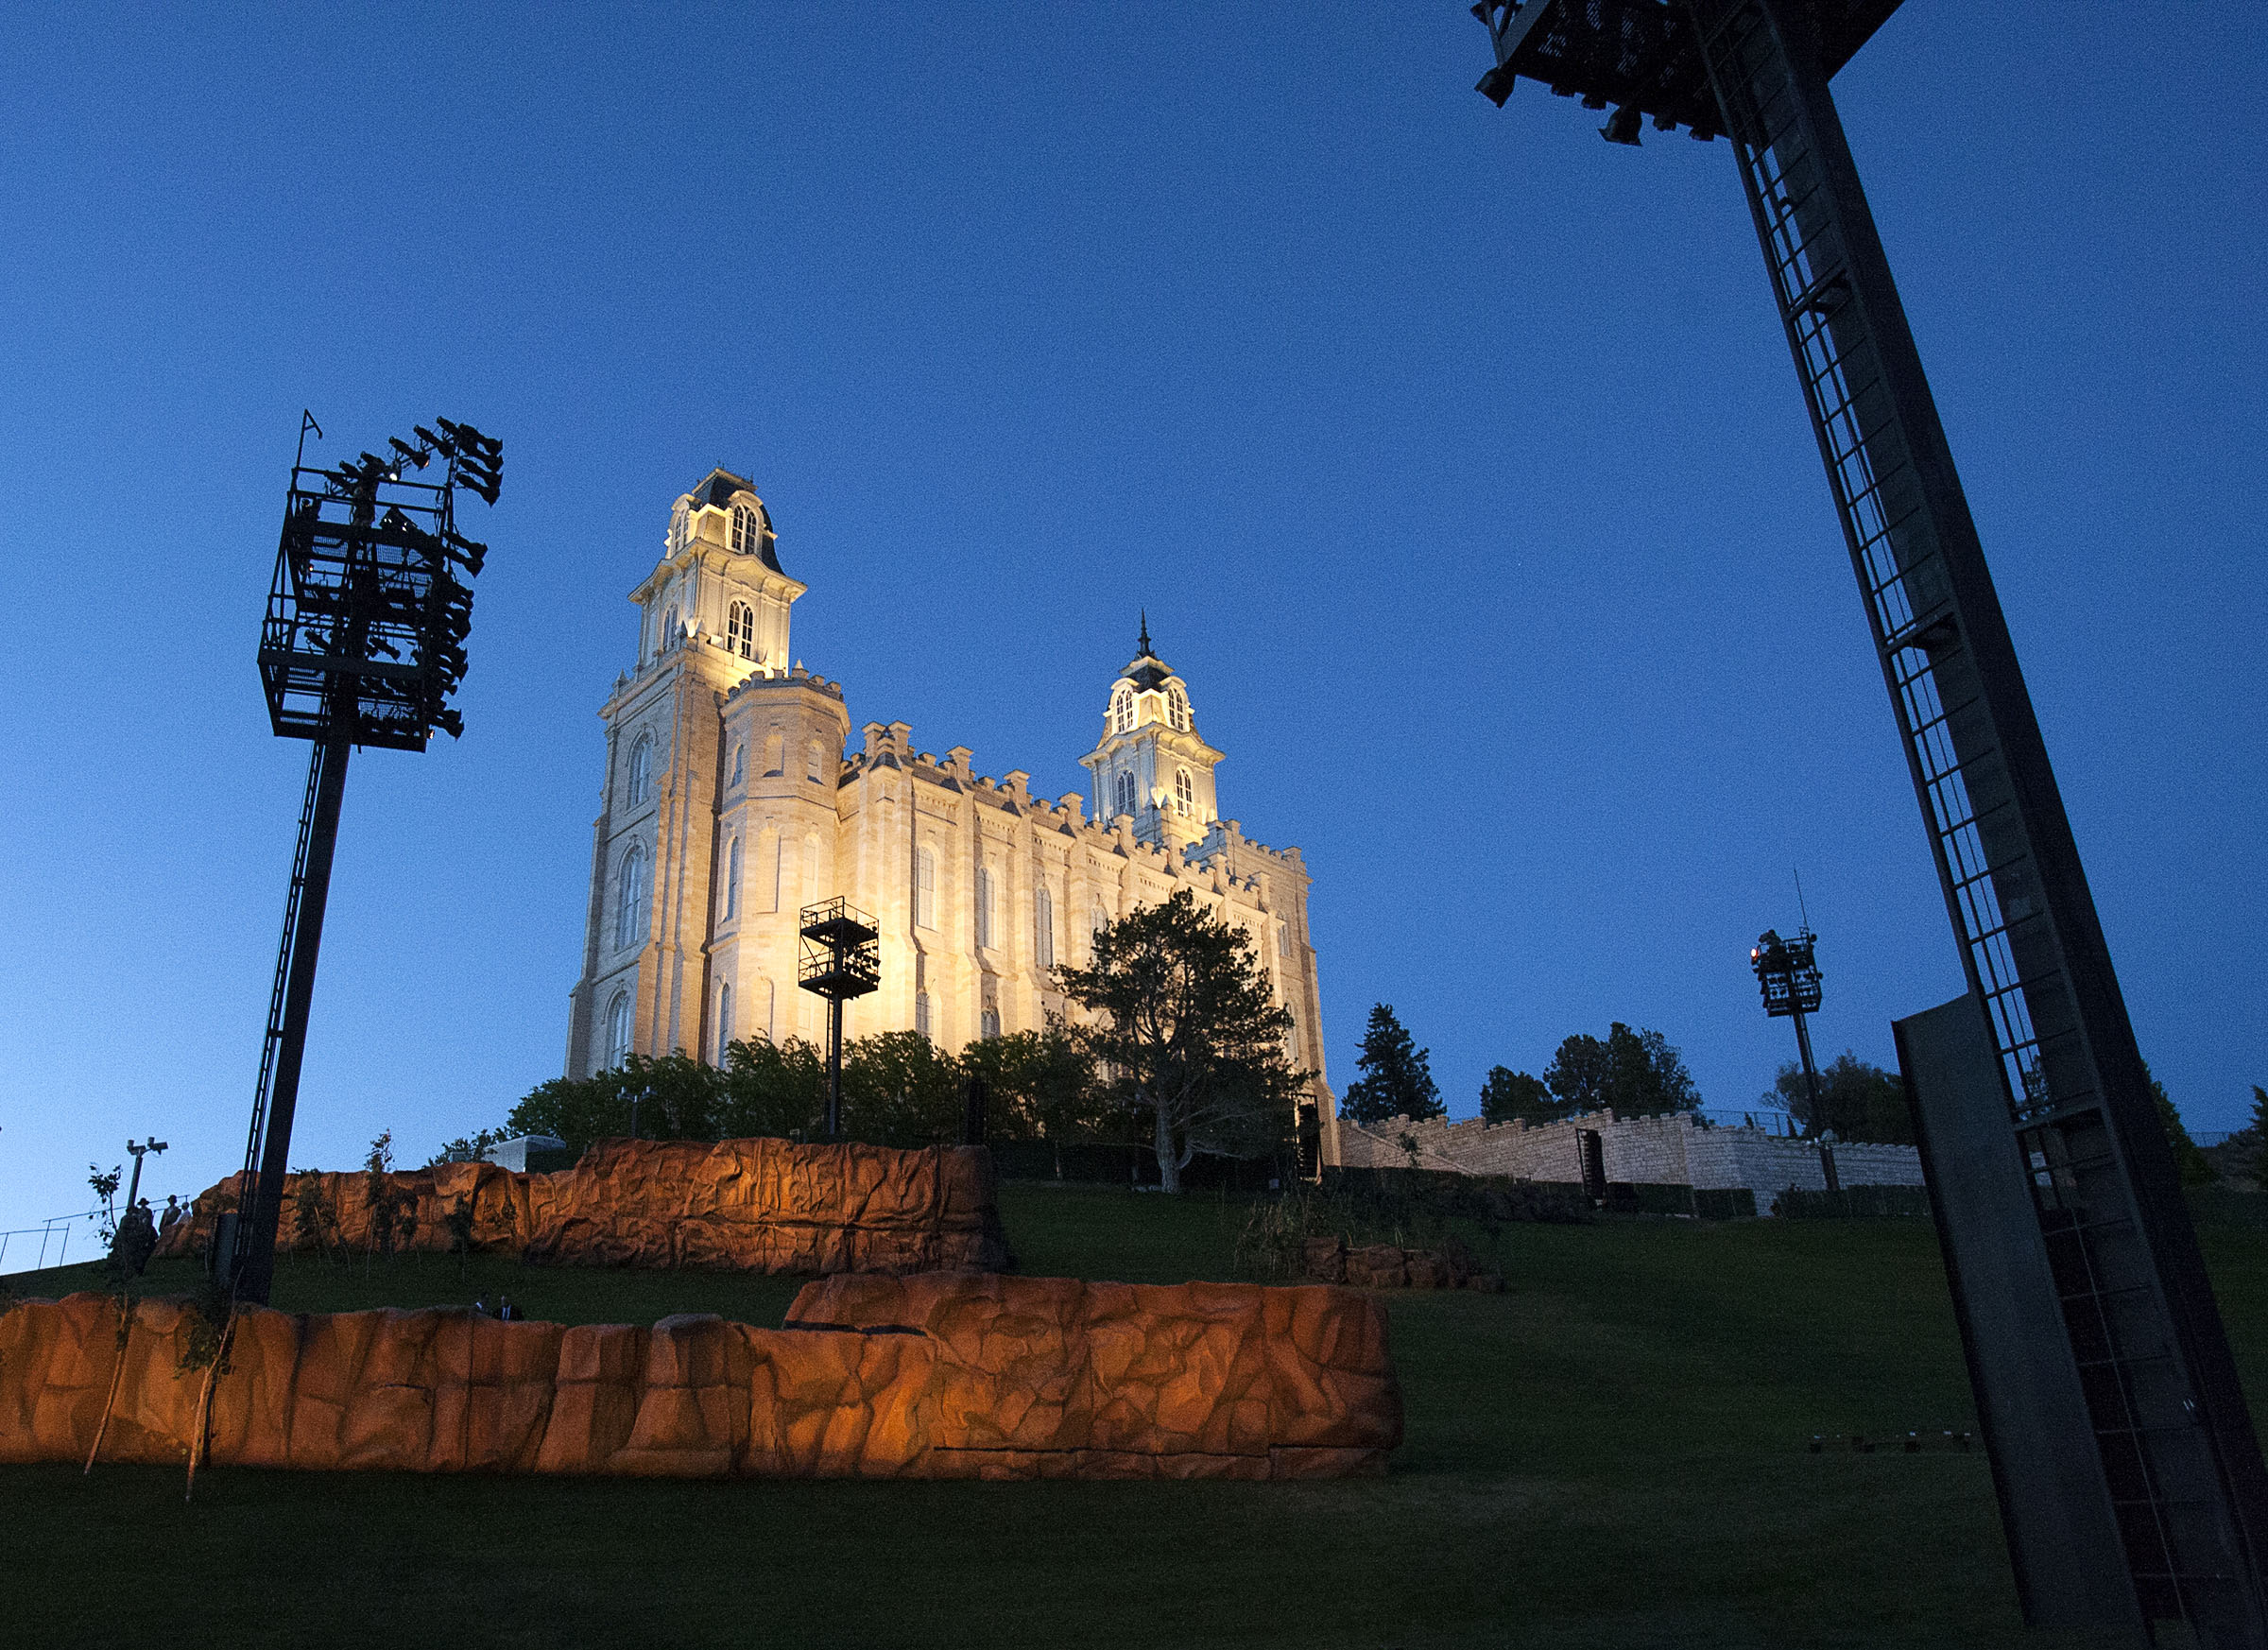 The Manti Temple, pictured during the Mormon Miracle Pageant on Wednesday, June 15, 2016, is illuminated at times during the show.